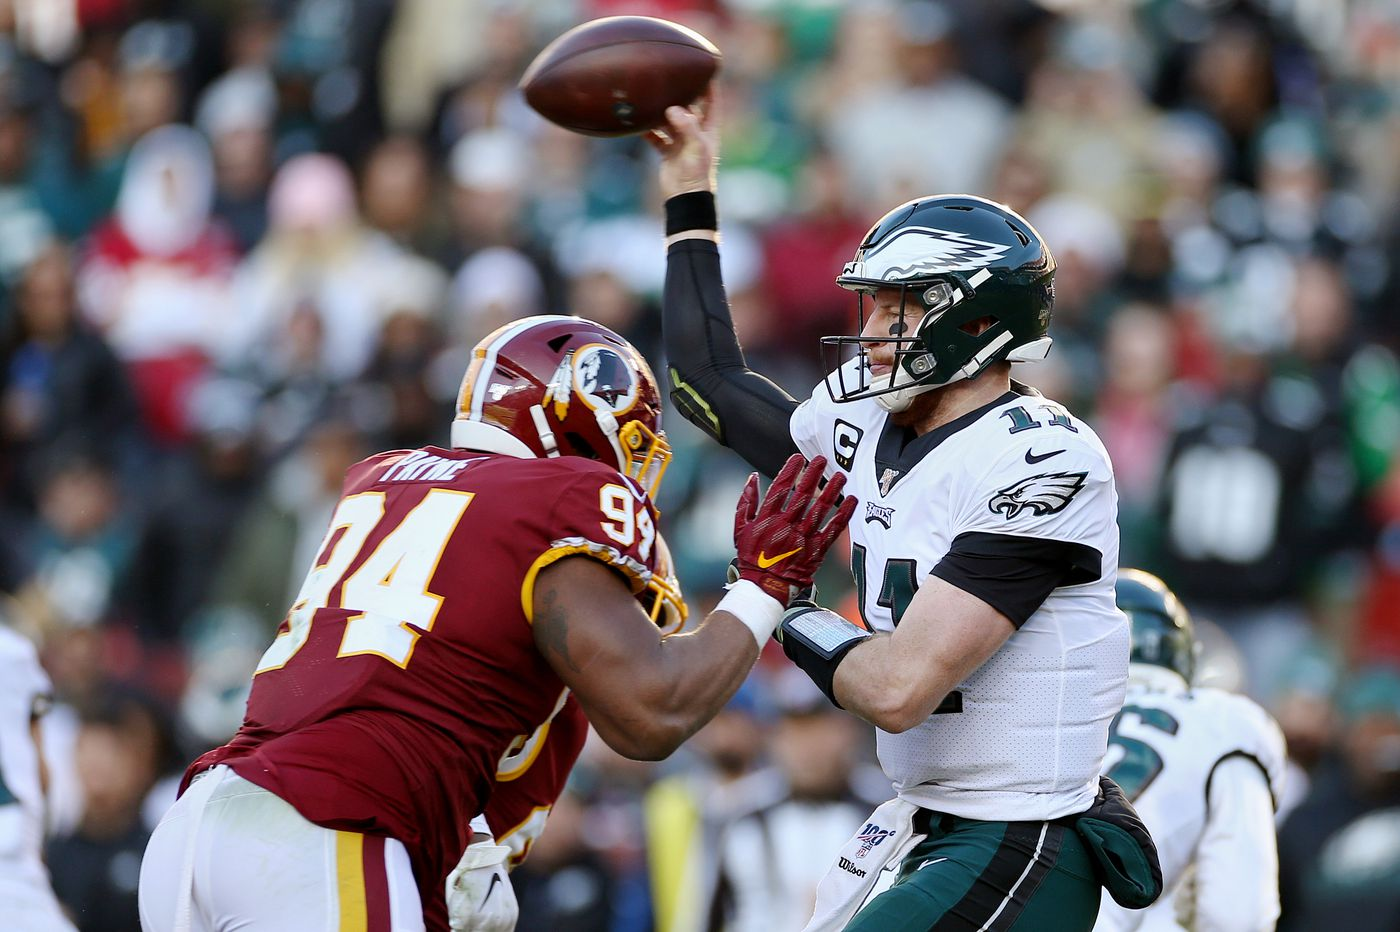 The Eagles' playoff scenarios after Week 15, with Cowboys game looming next